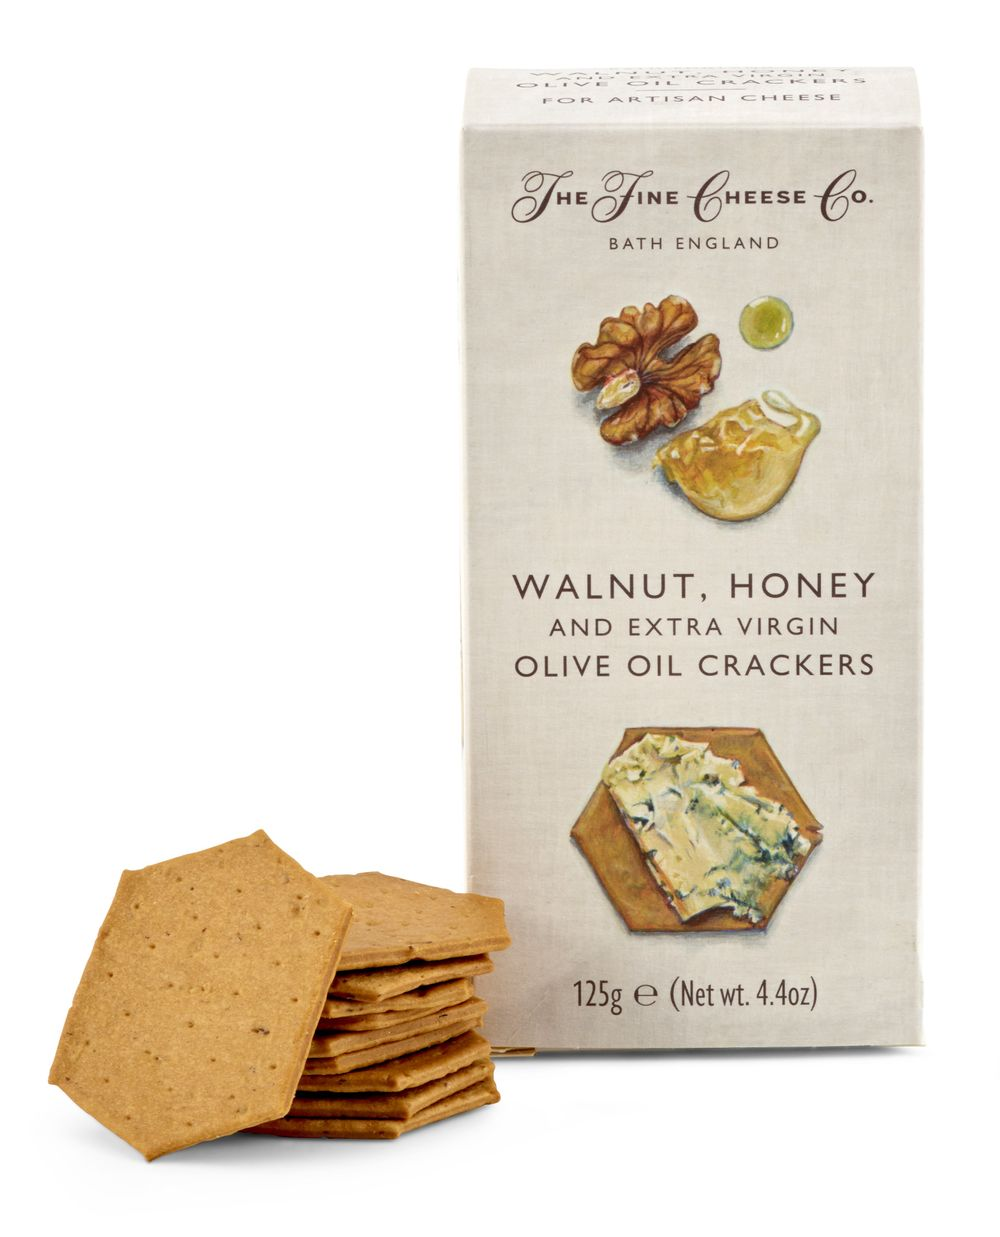 Walnut, Honey & Extra Virgin Olive Oil Crackers